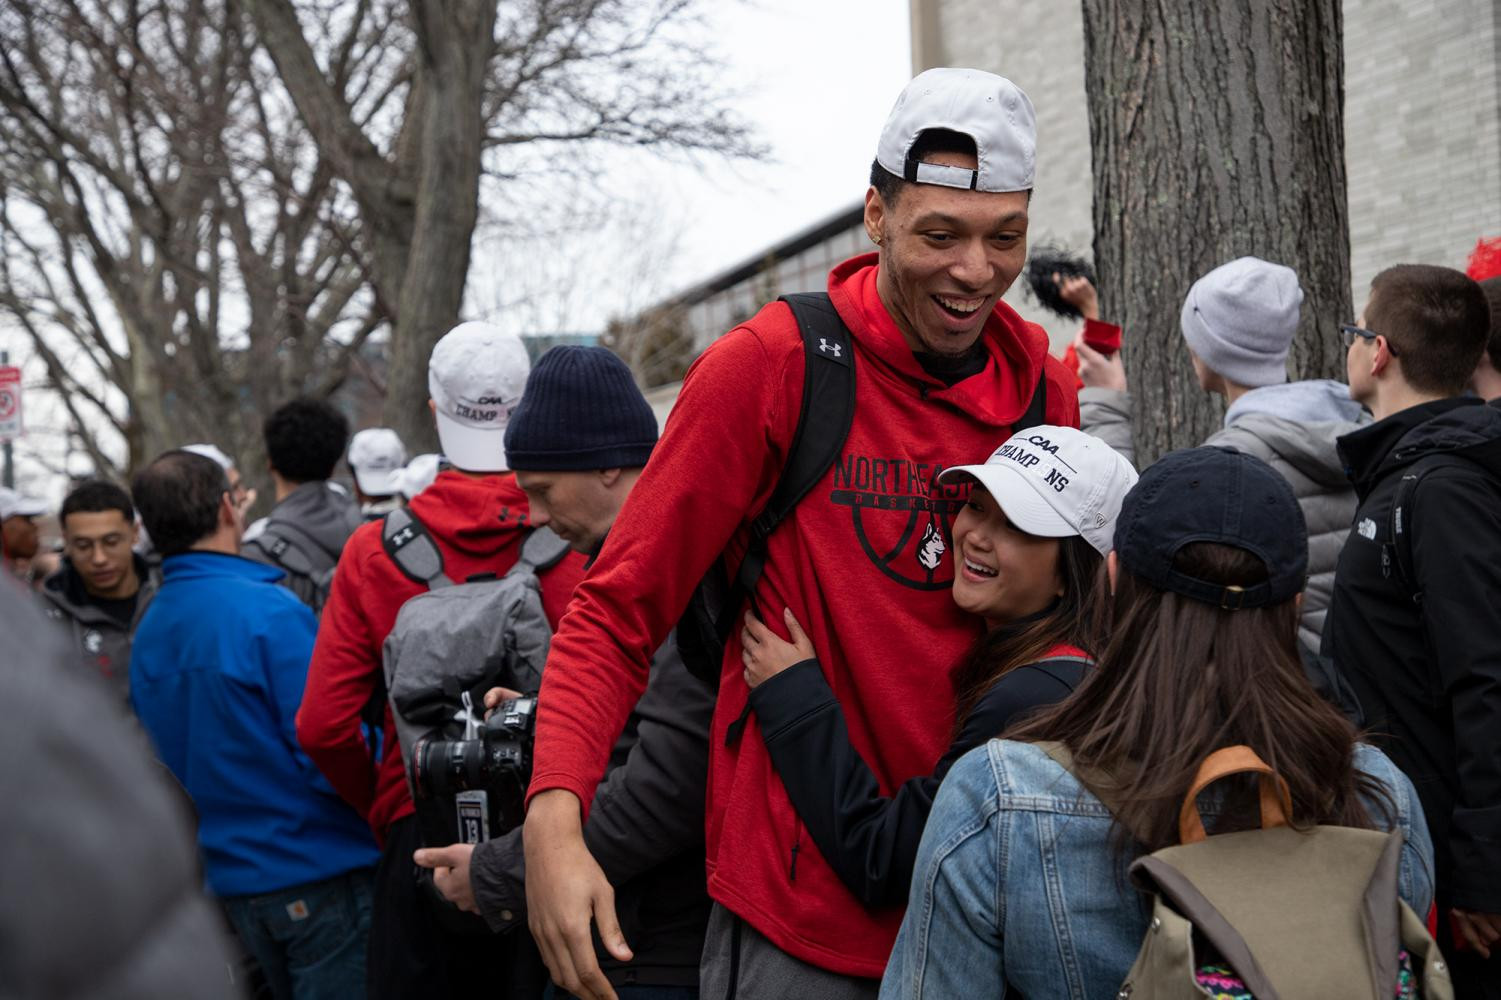 Senior+forward+Jeremy+Miller+receives+a+hug+from+fifth-year+dance+team+member+Chelsea+Pe+Benito+upon+returning+to+campus.